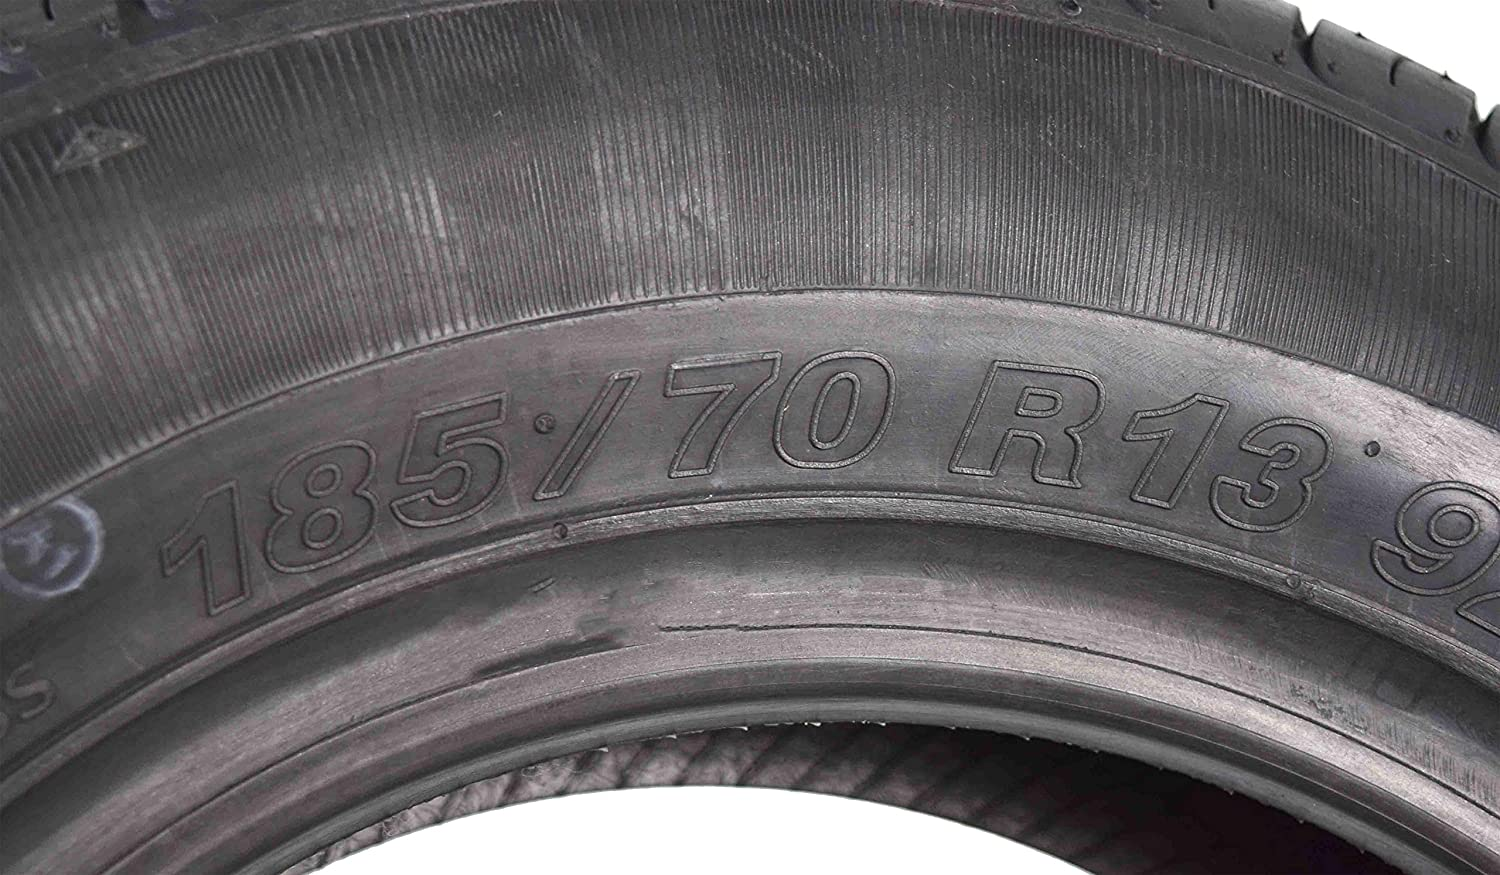 NEW ST 185//70R13 All-Weather Trailer Tire City Star V2 185//70-13 Radial 1857013 185 70 13 2